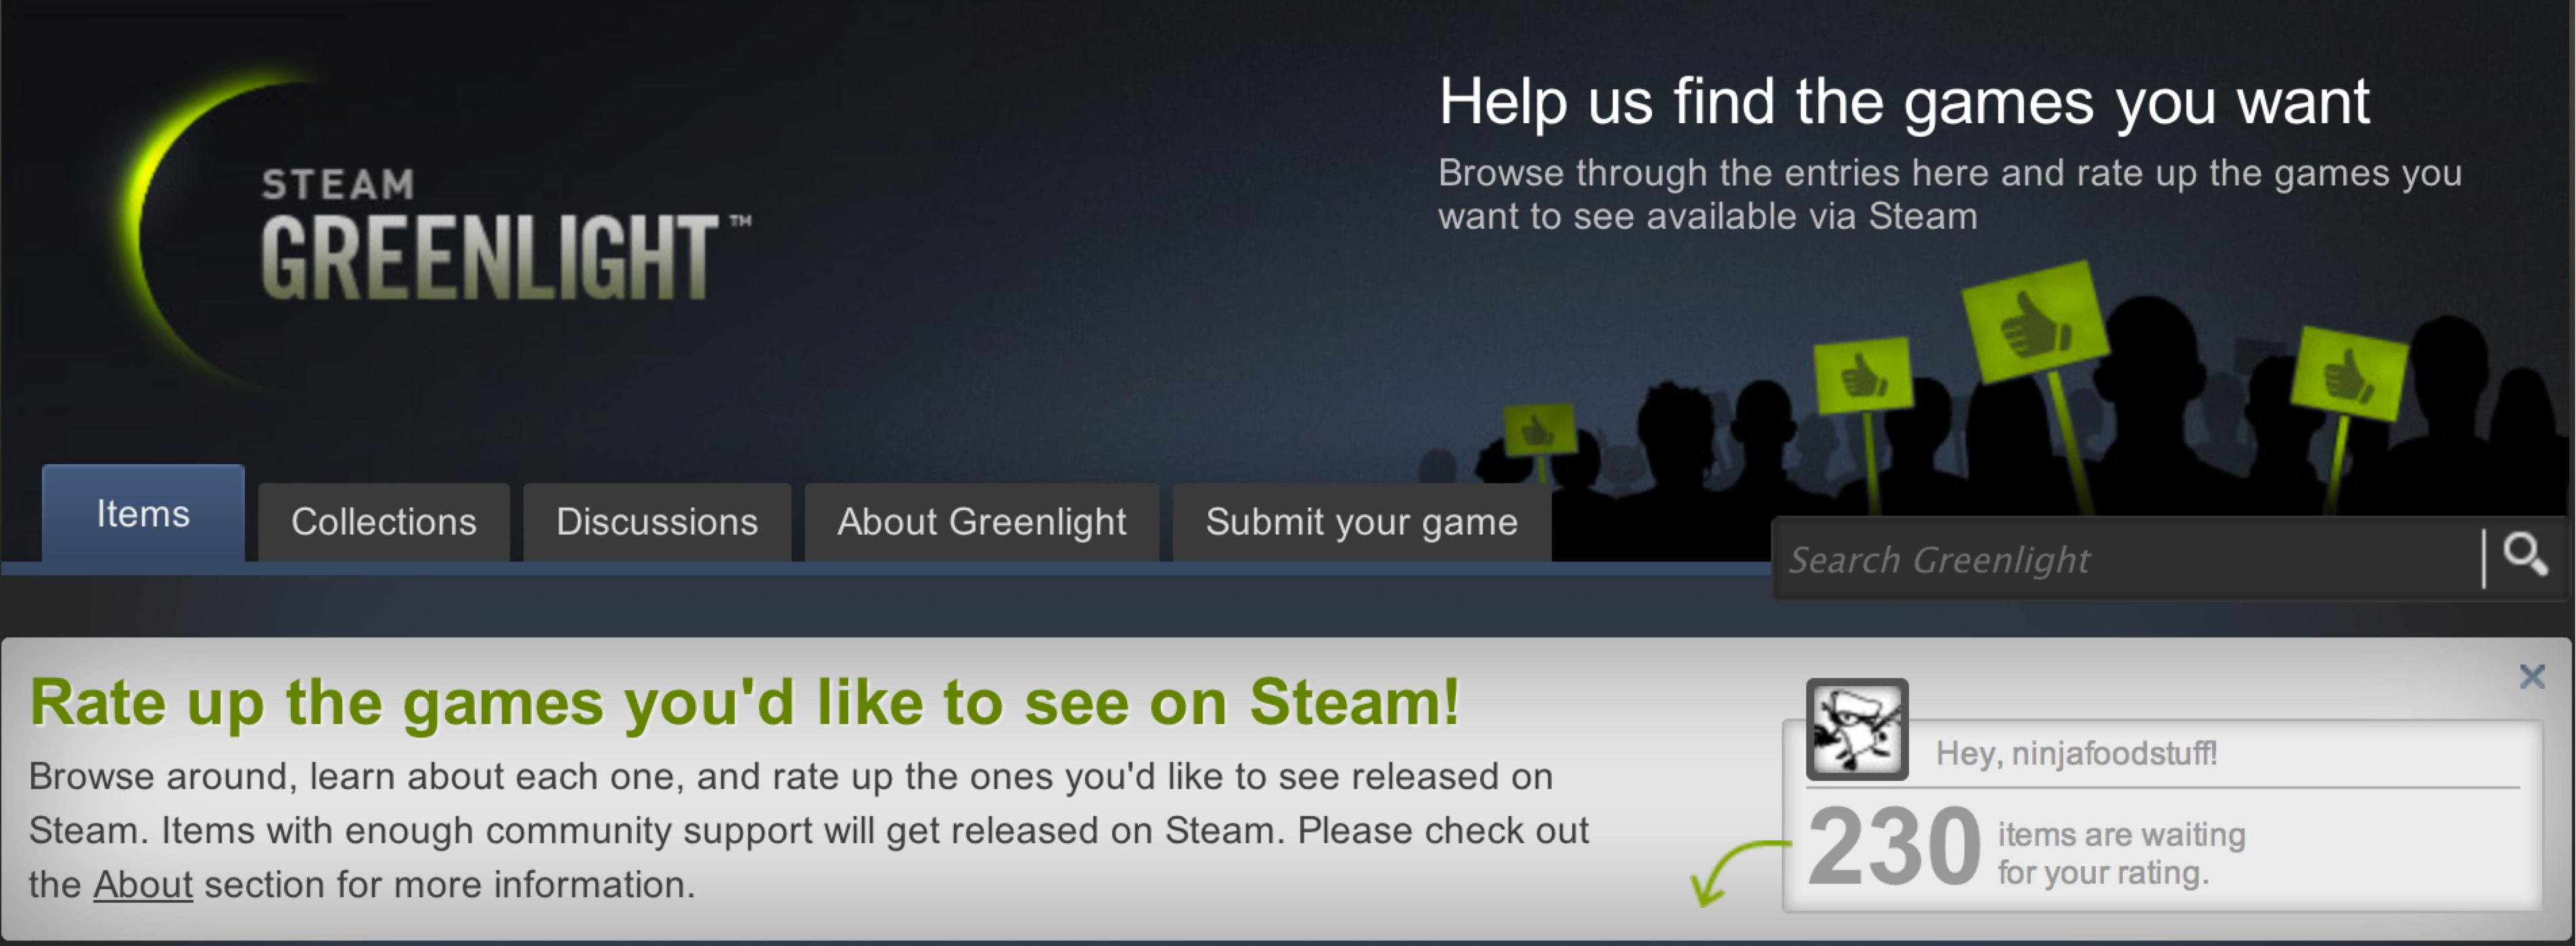 Steam's Greenlight lets you vote for games